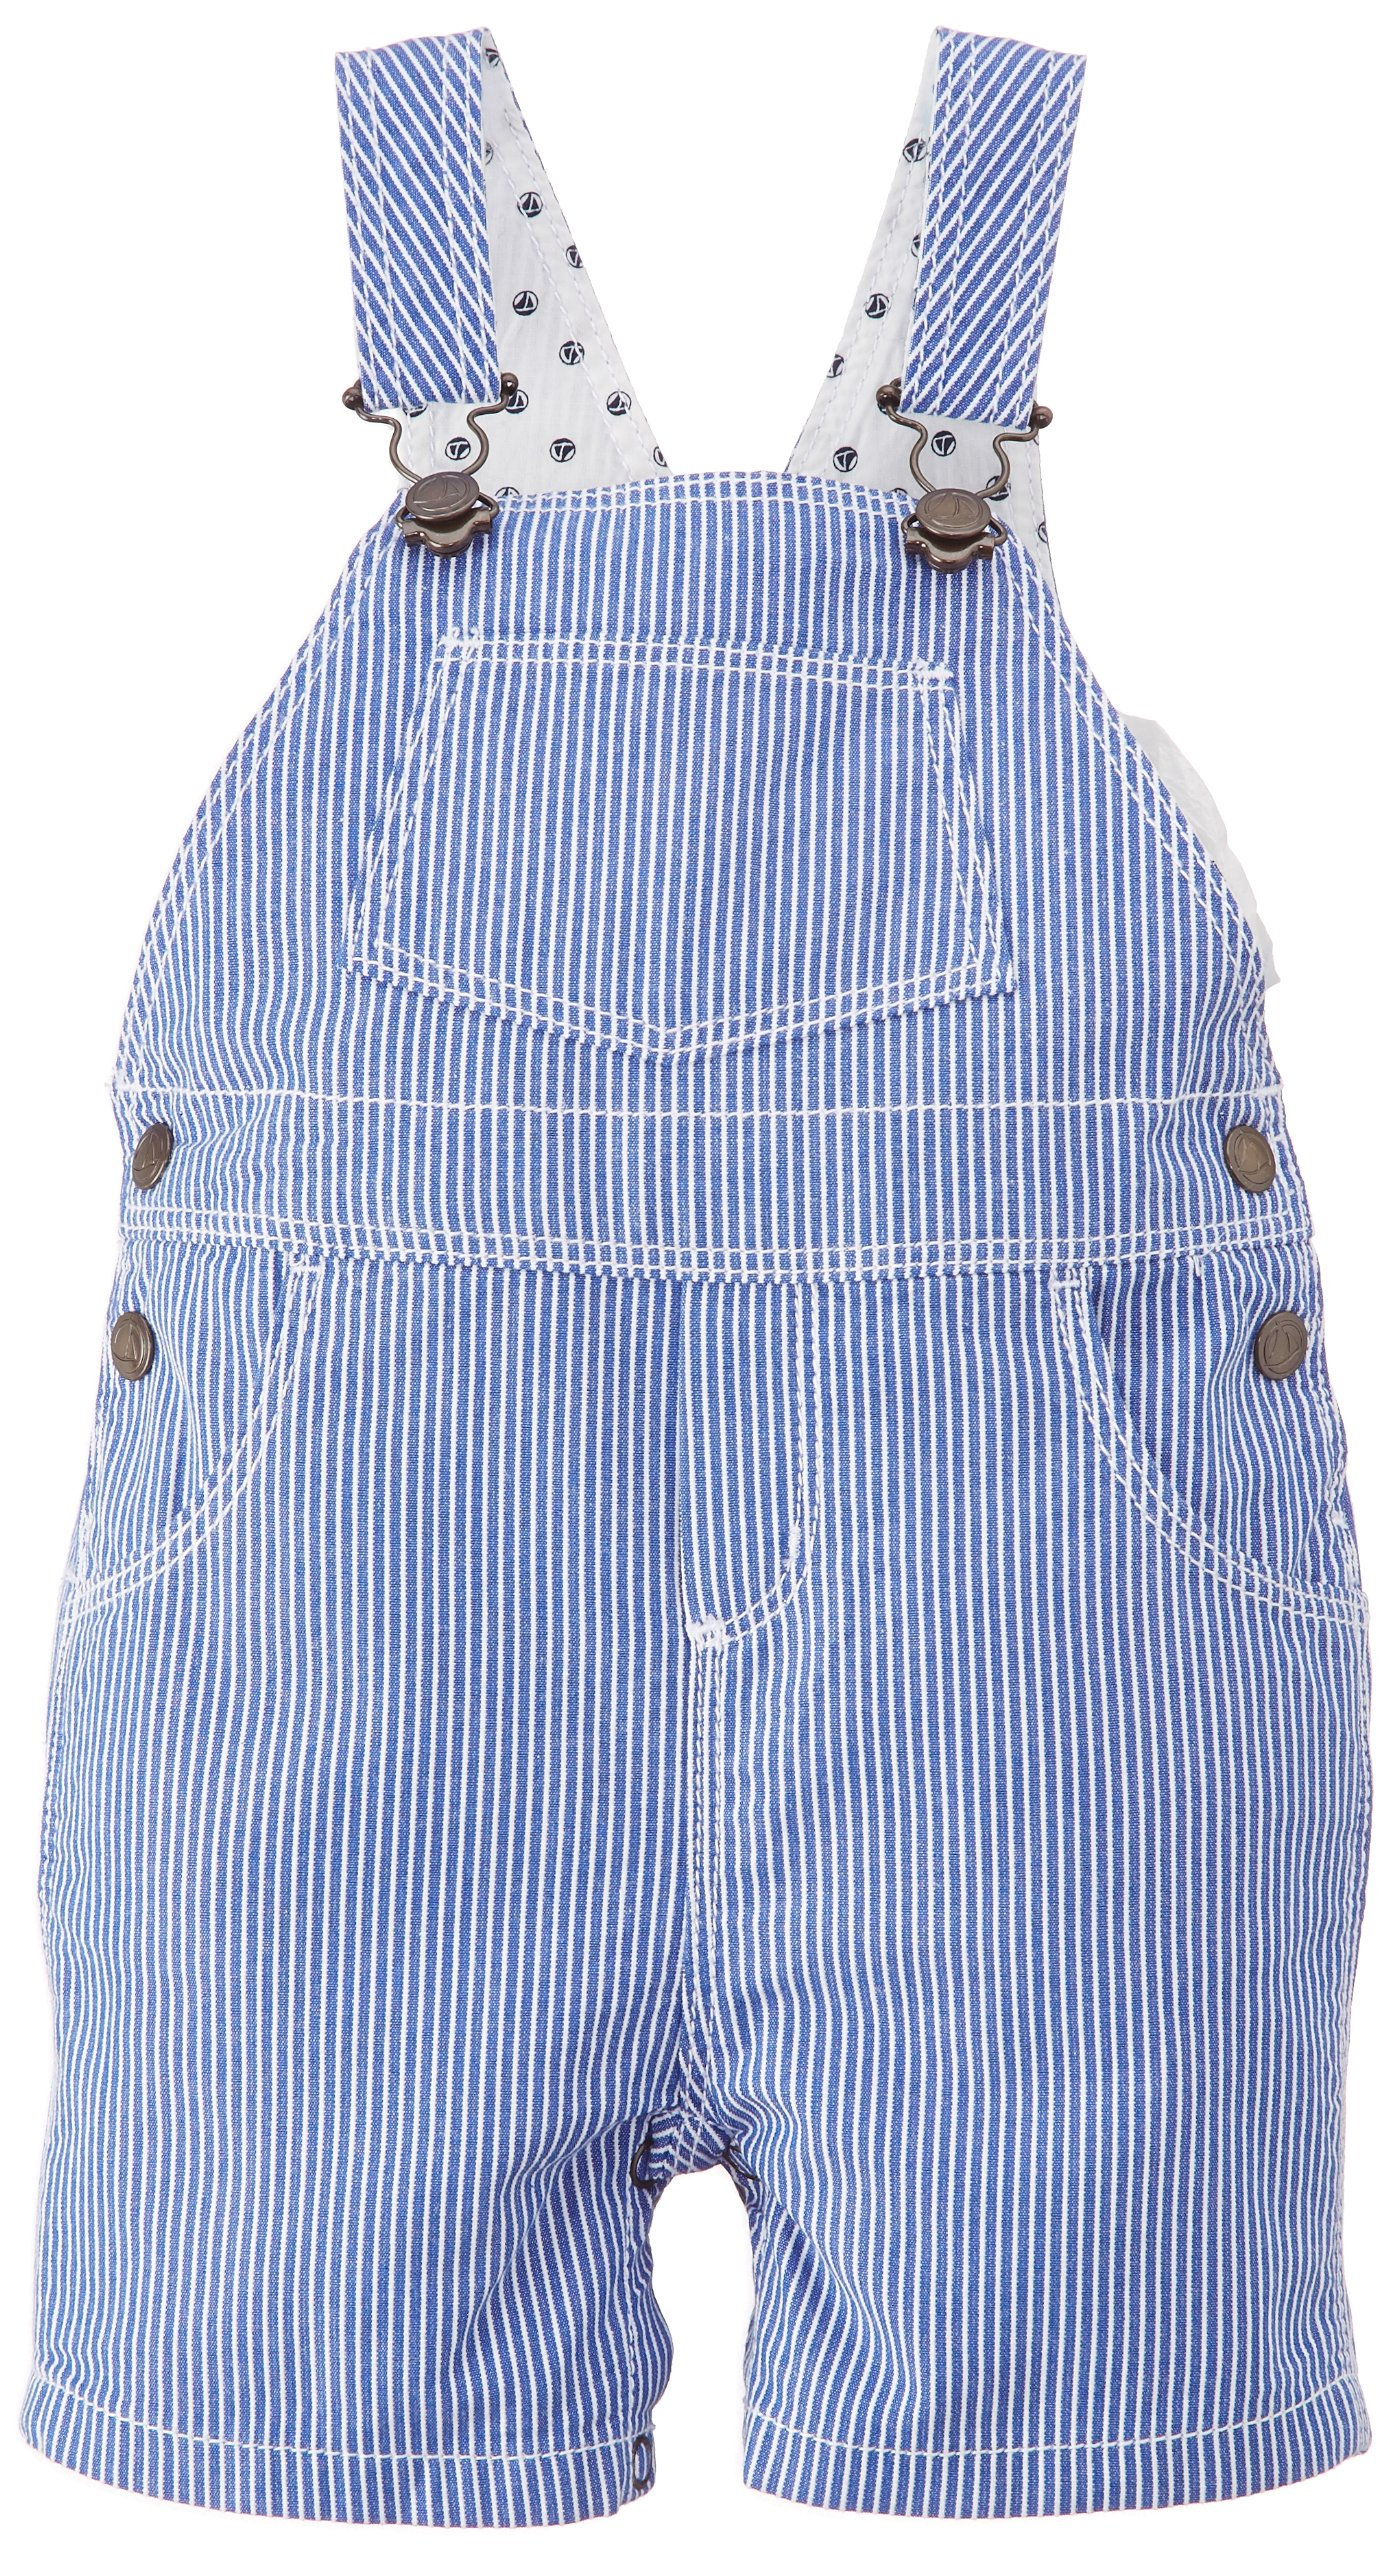 Petit Bateau Little Boys' 'Forcing' Striped Overalls (Baby) - Blue/White - 24 Months